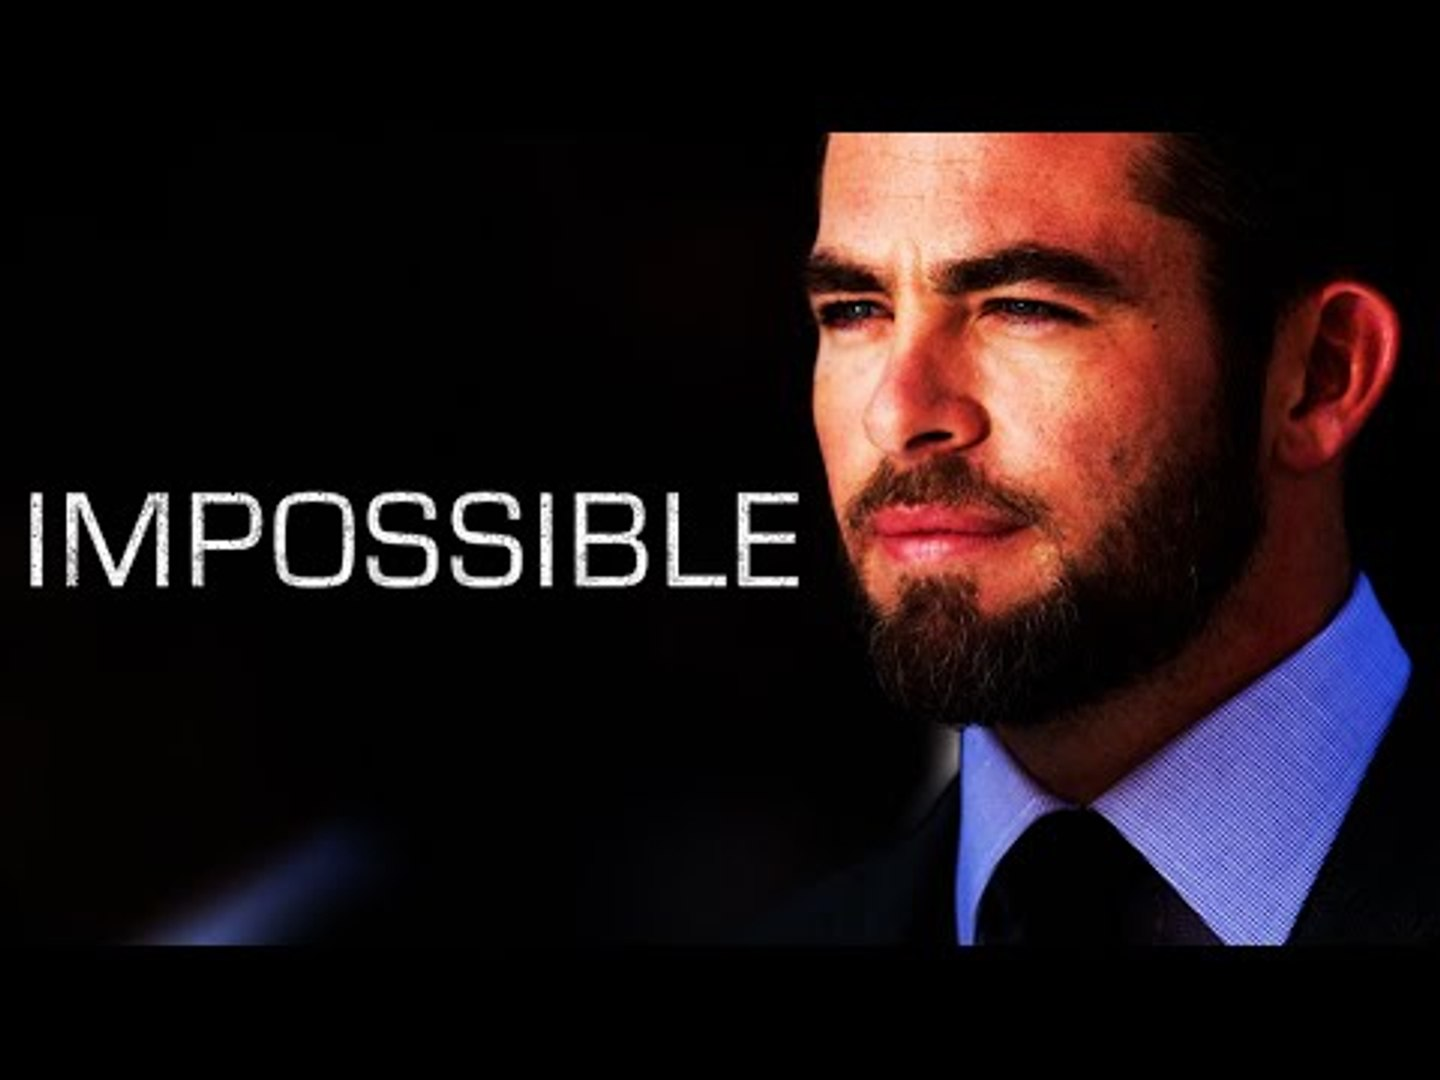 Impossible - Motivational video